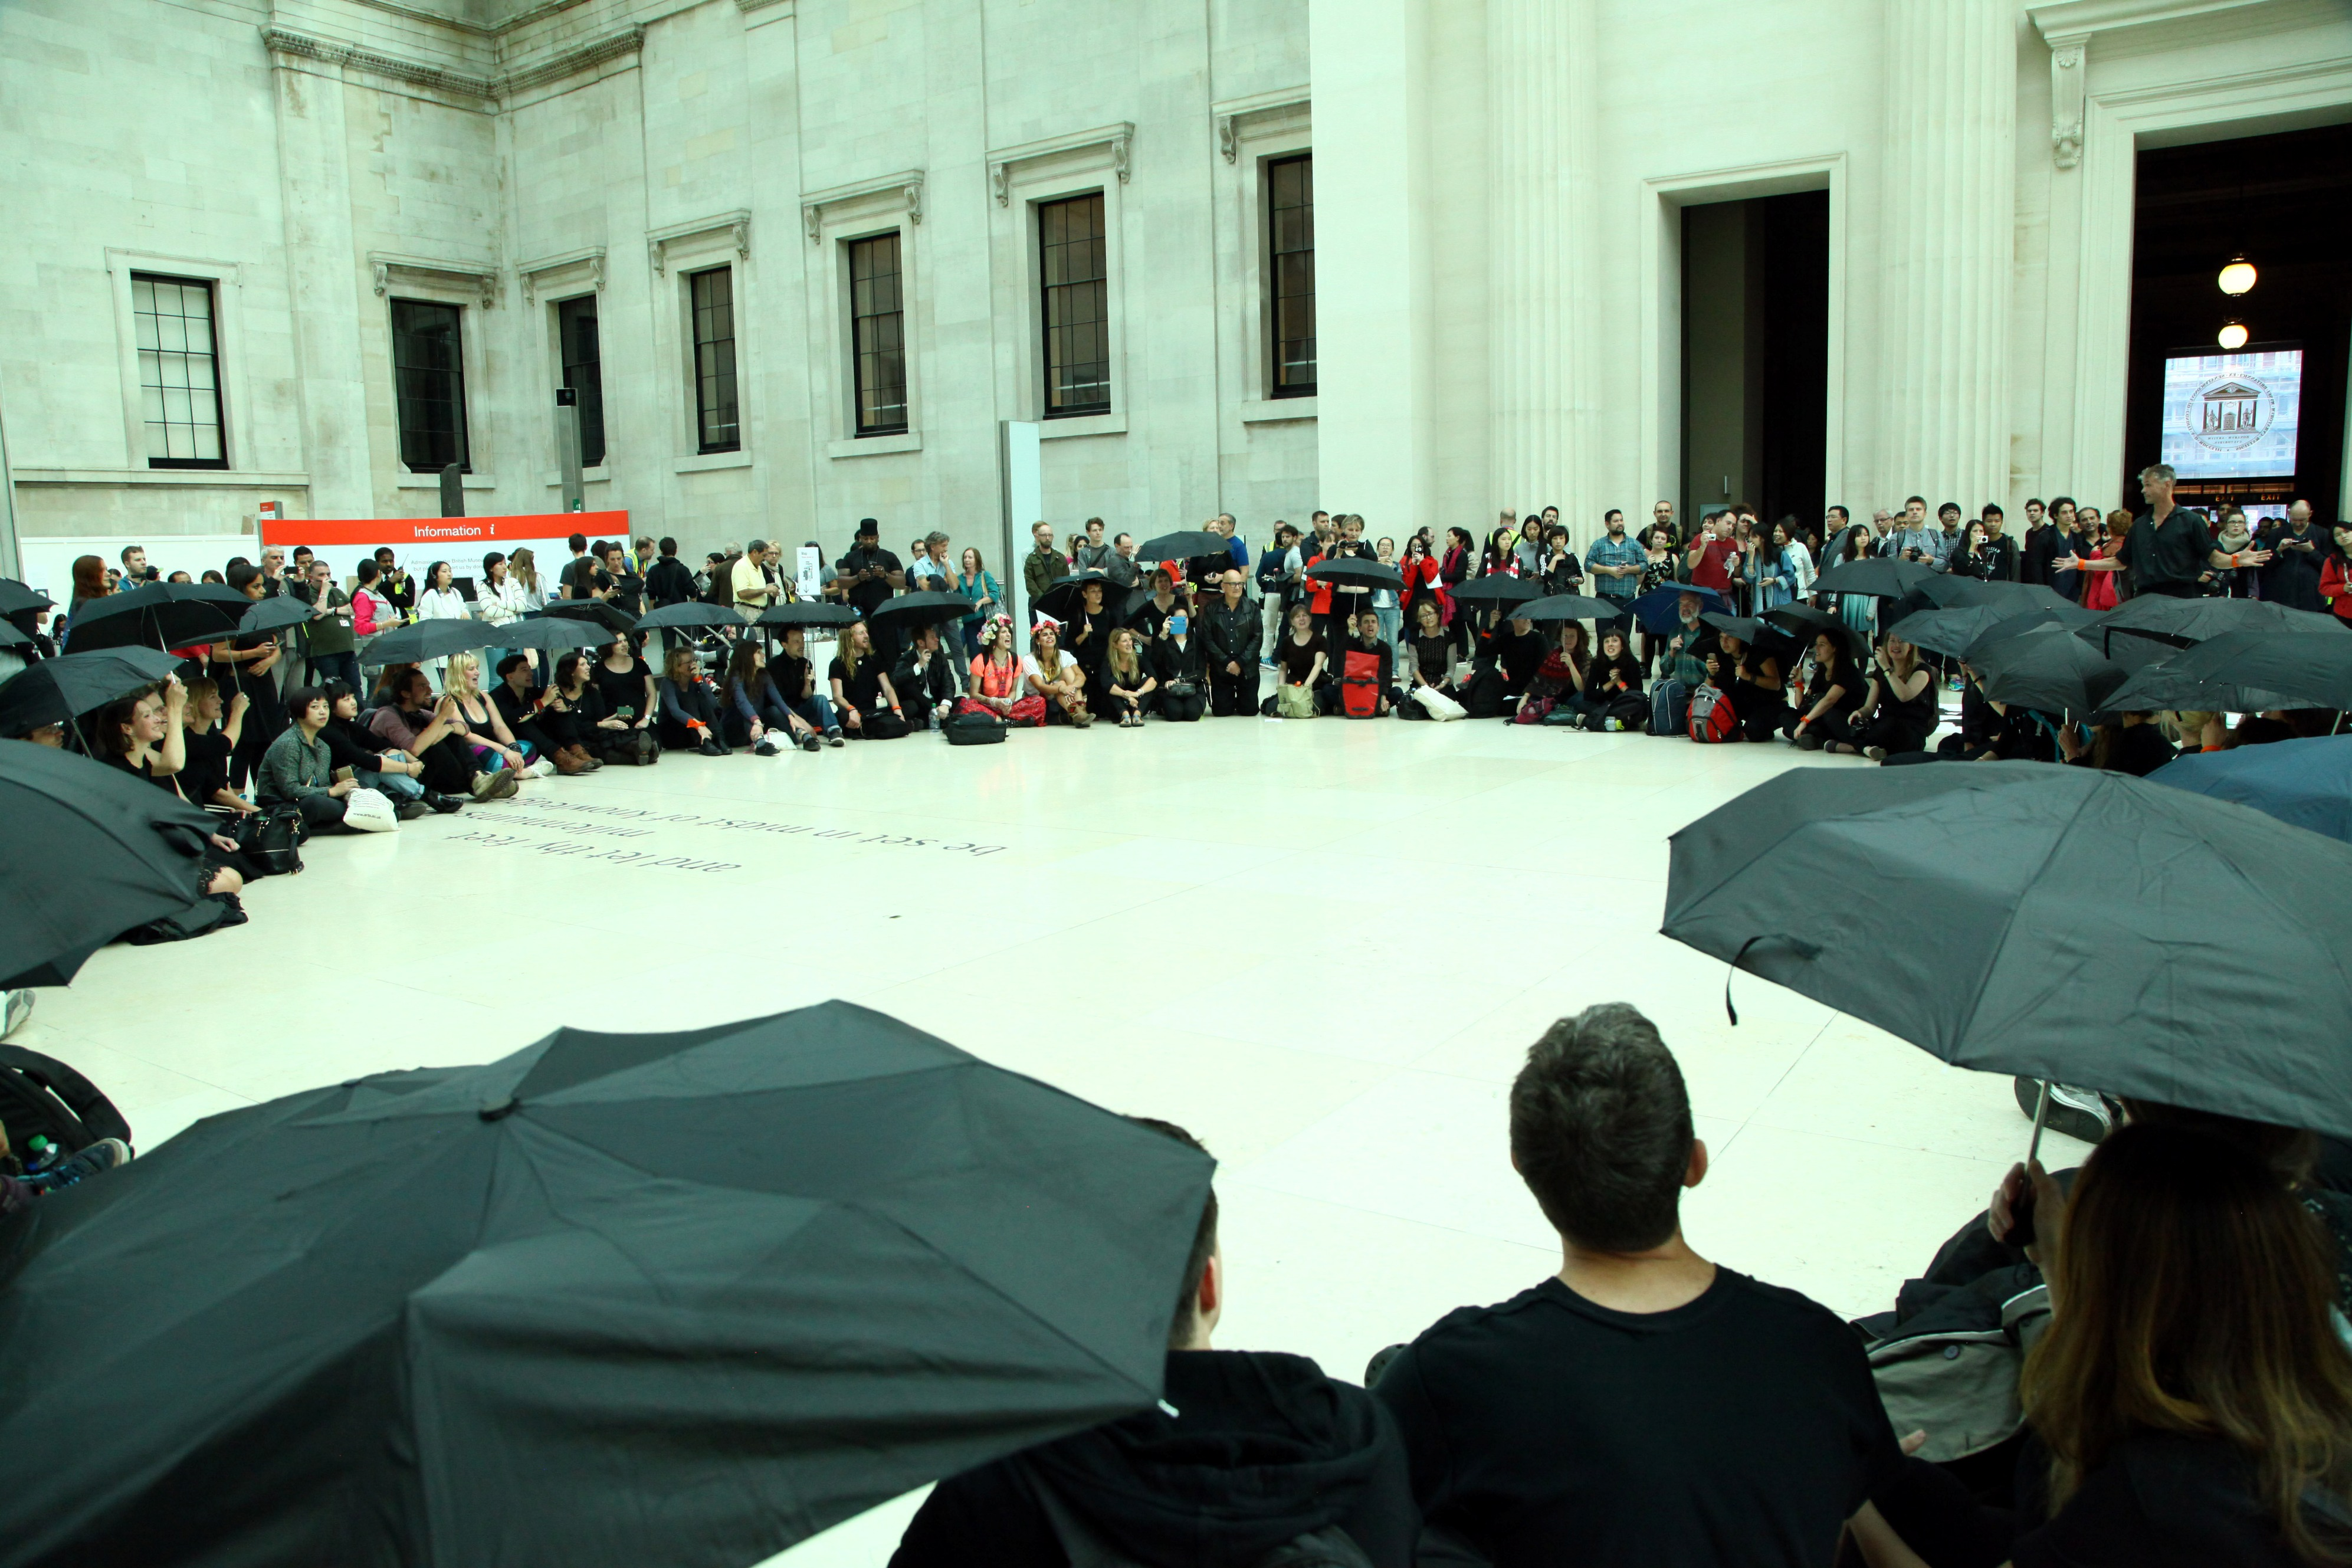 Campaigners inside the British Museum, September 2015